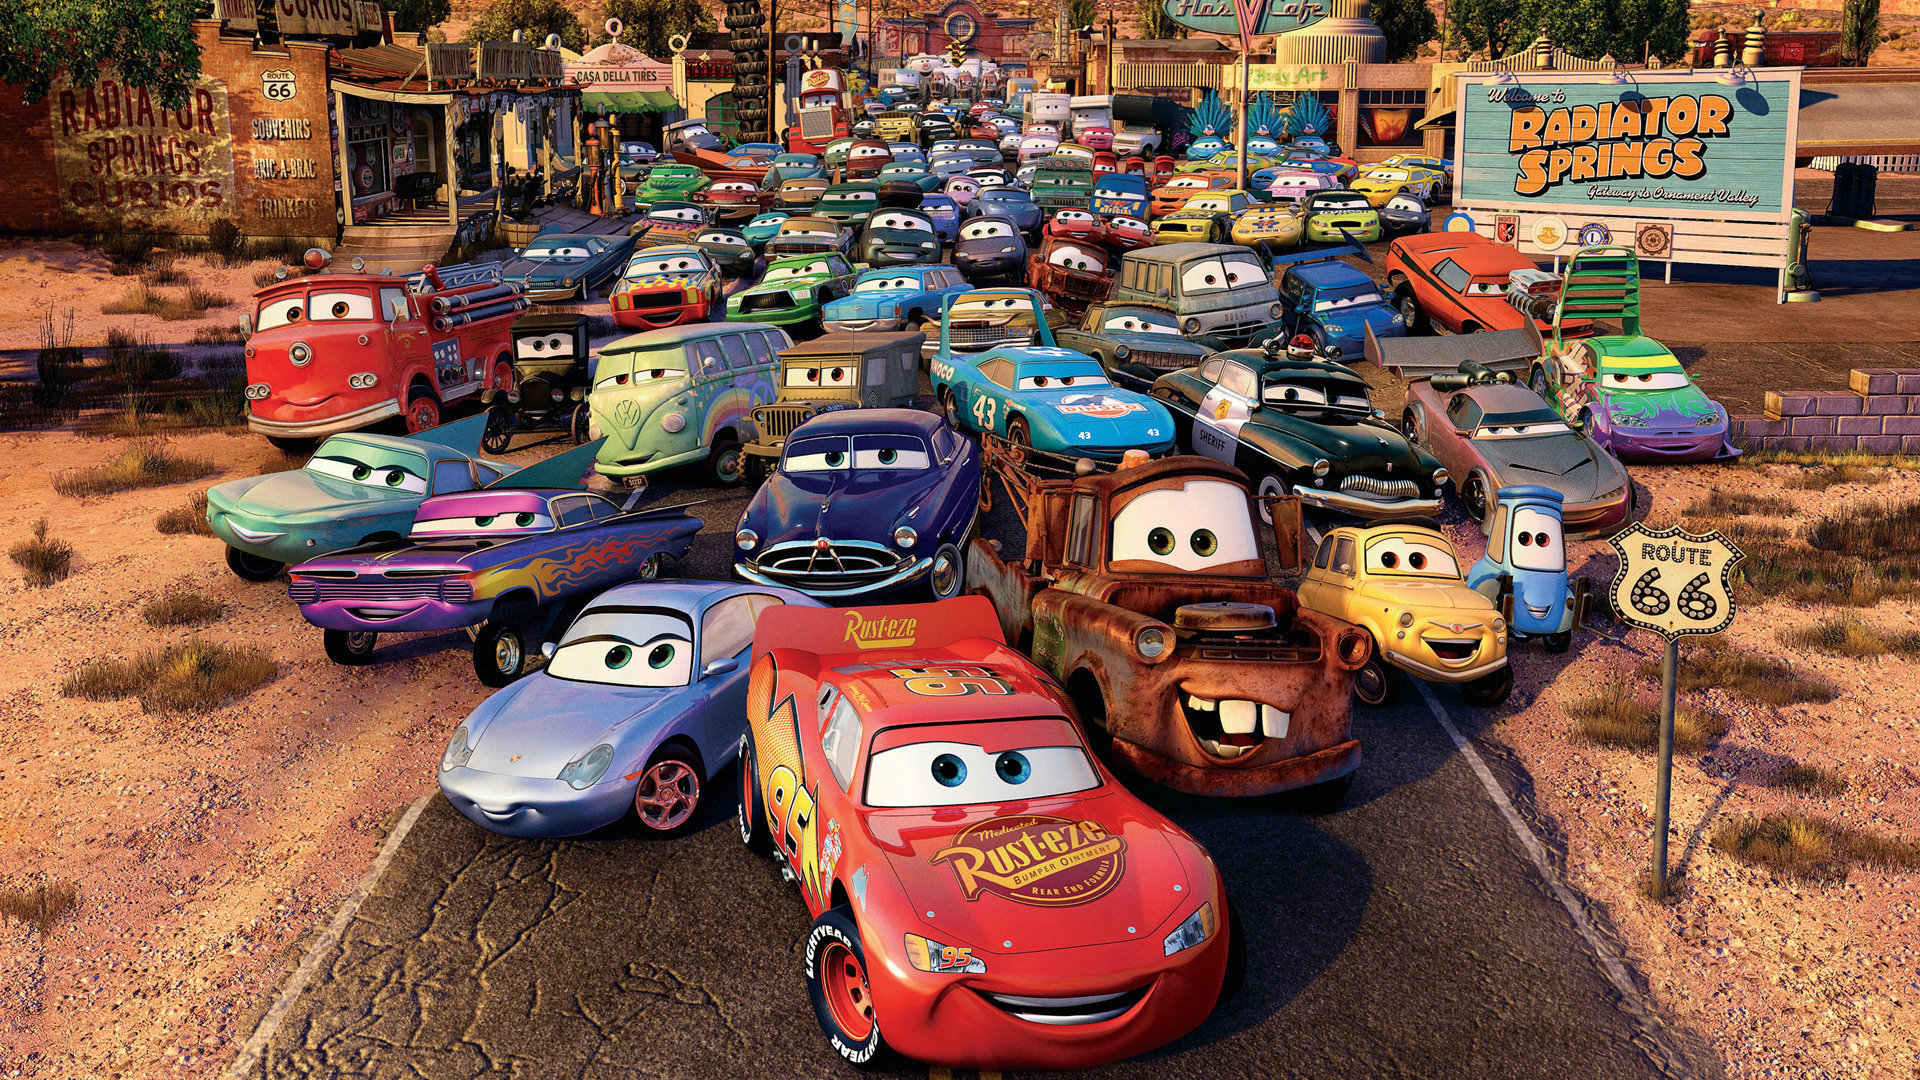 Cars Movie Wallpapers 1920x1080 Full Hd 1080p Desktop Backgrounds